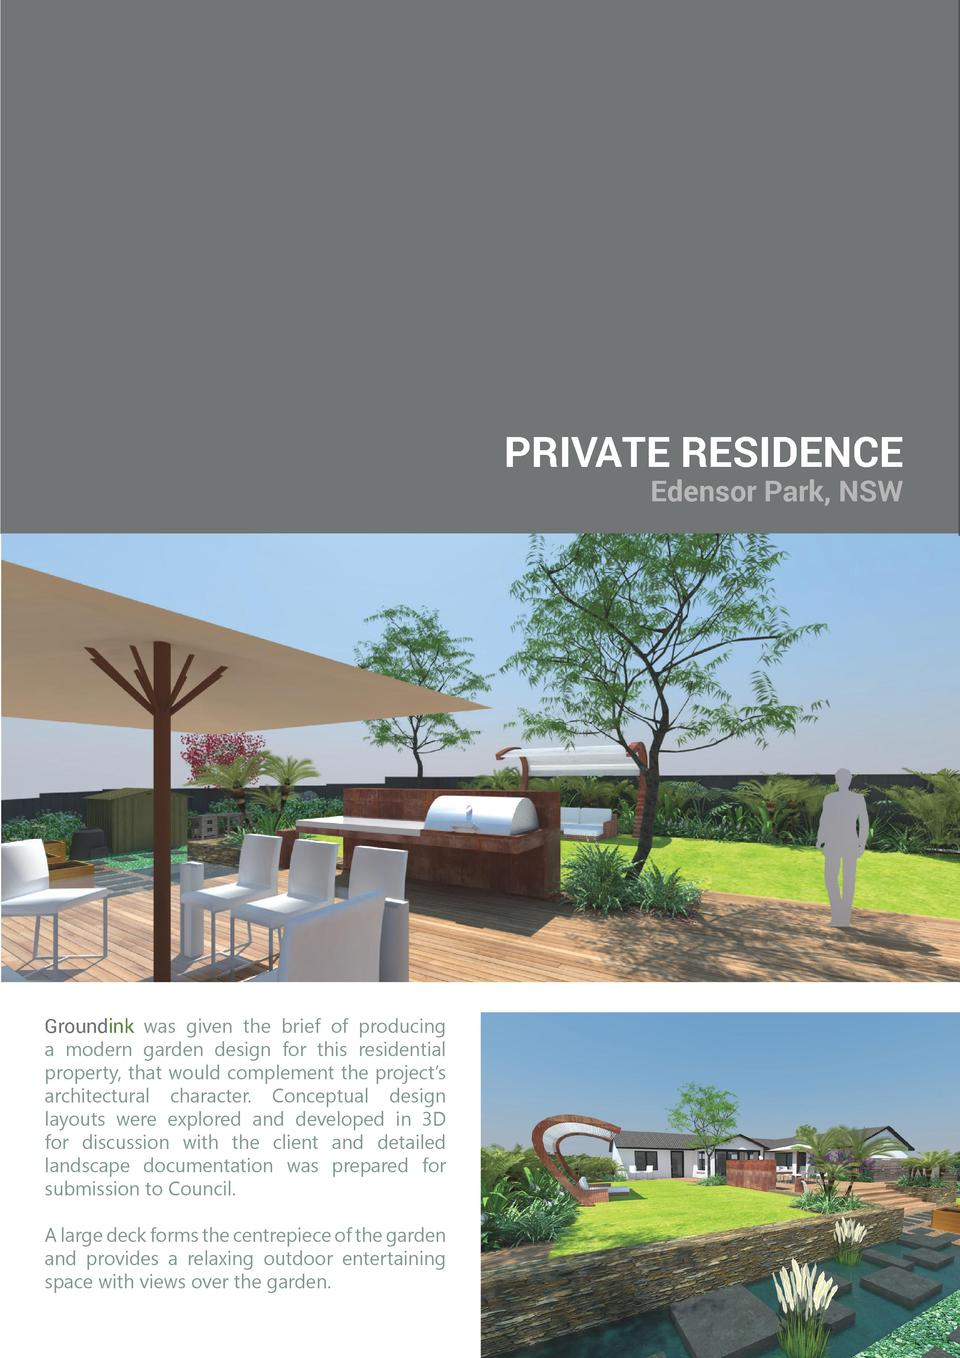 PRIVATE RESIDENCE  Edensor Park, NSW  Groundink was given the brief of producing a modern garden design for this residenti...